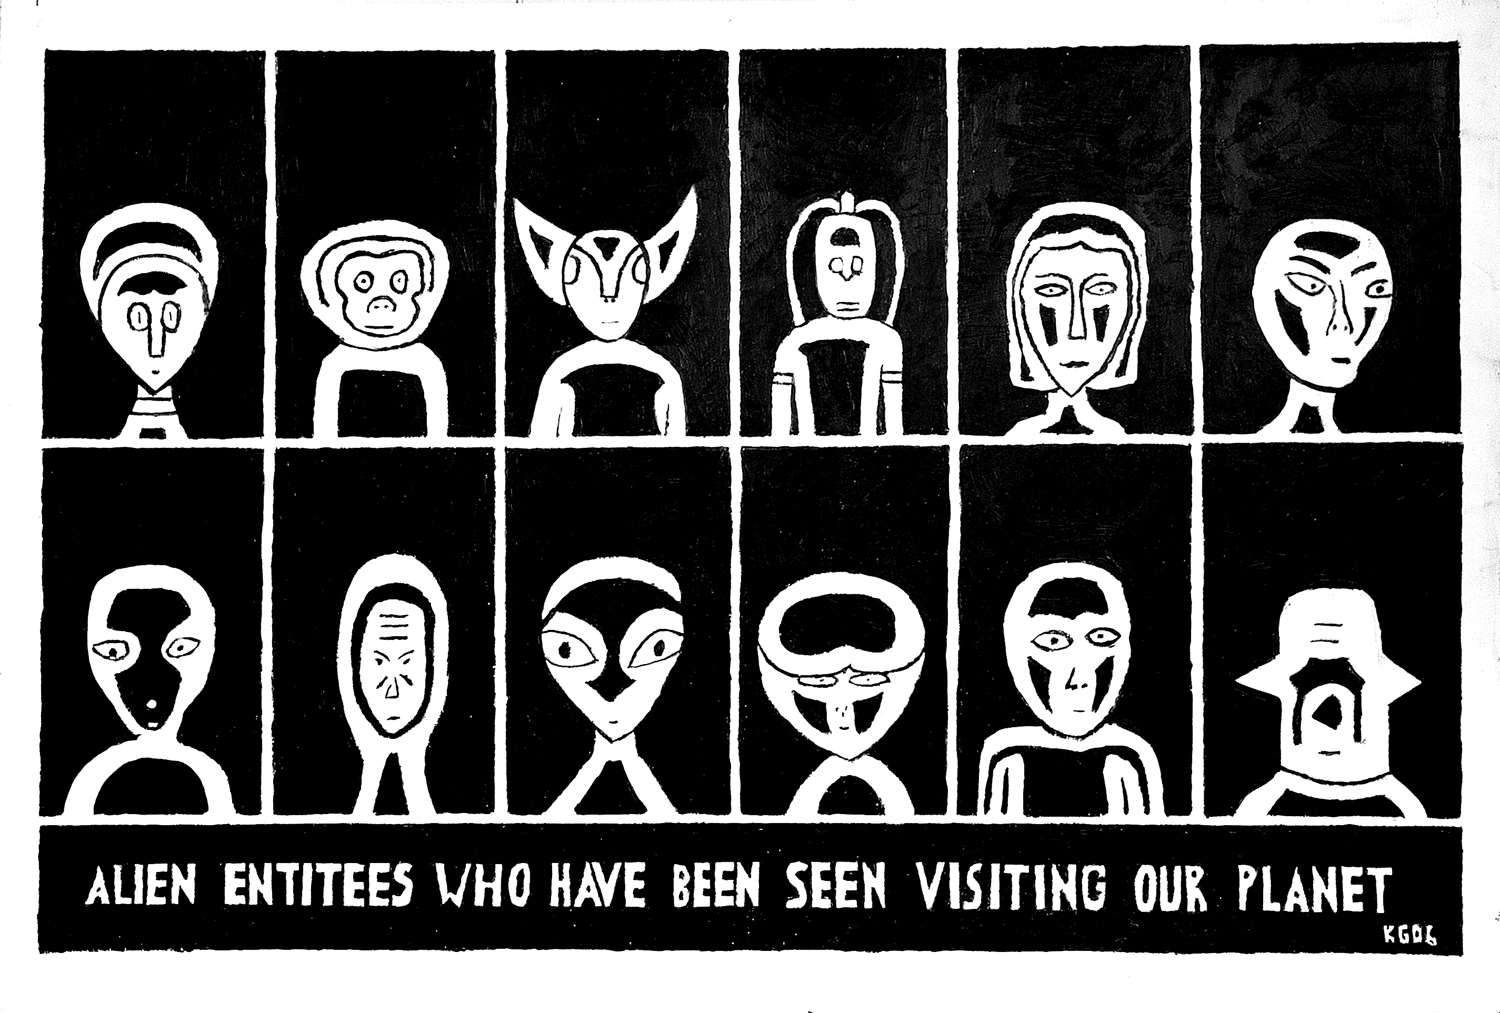 """Black and white painting of twelve aliens in a grid with text below stating """"ALIEN ENTITIES WHO HAVE BEEN VISITING OUR PLANET"""""""